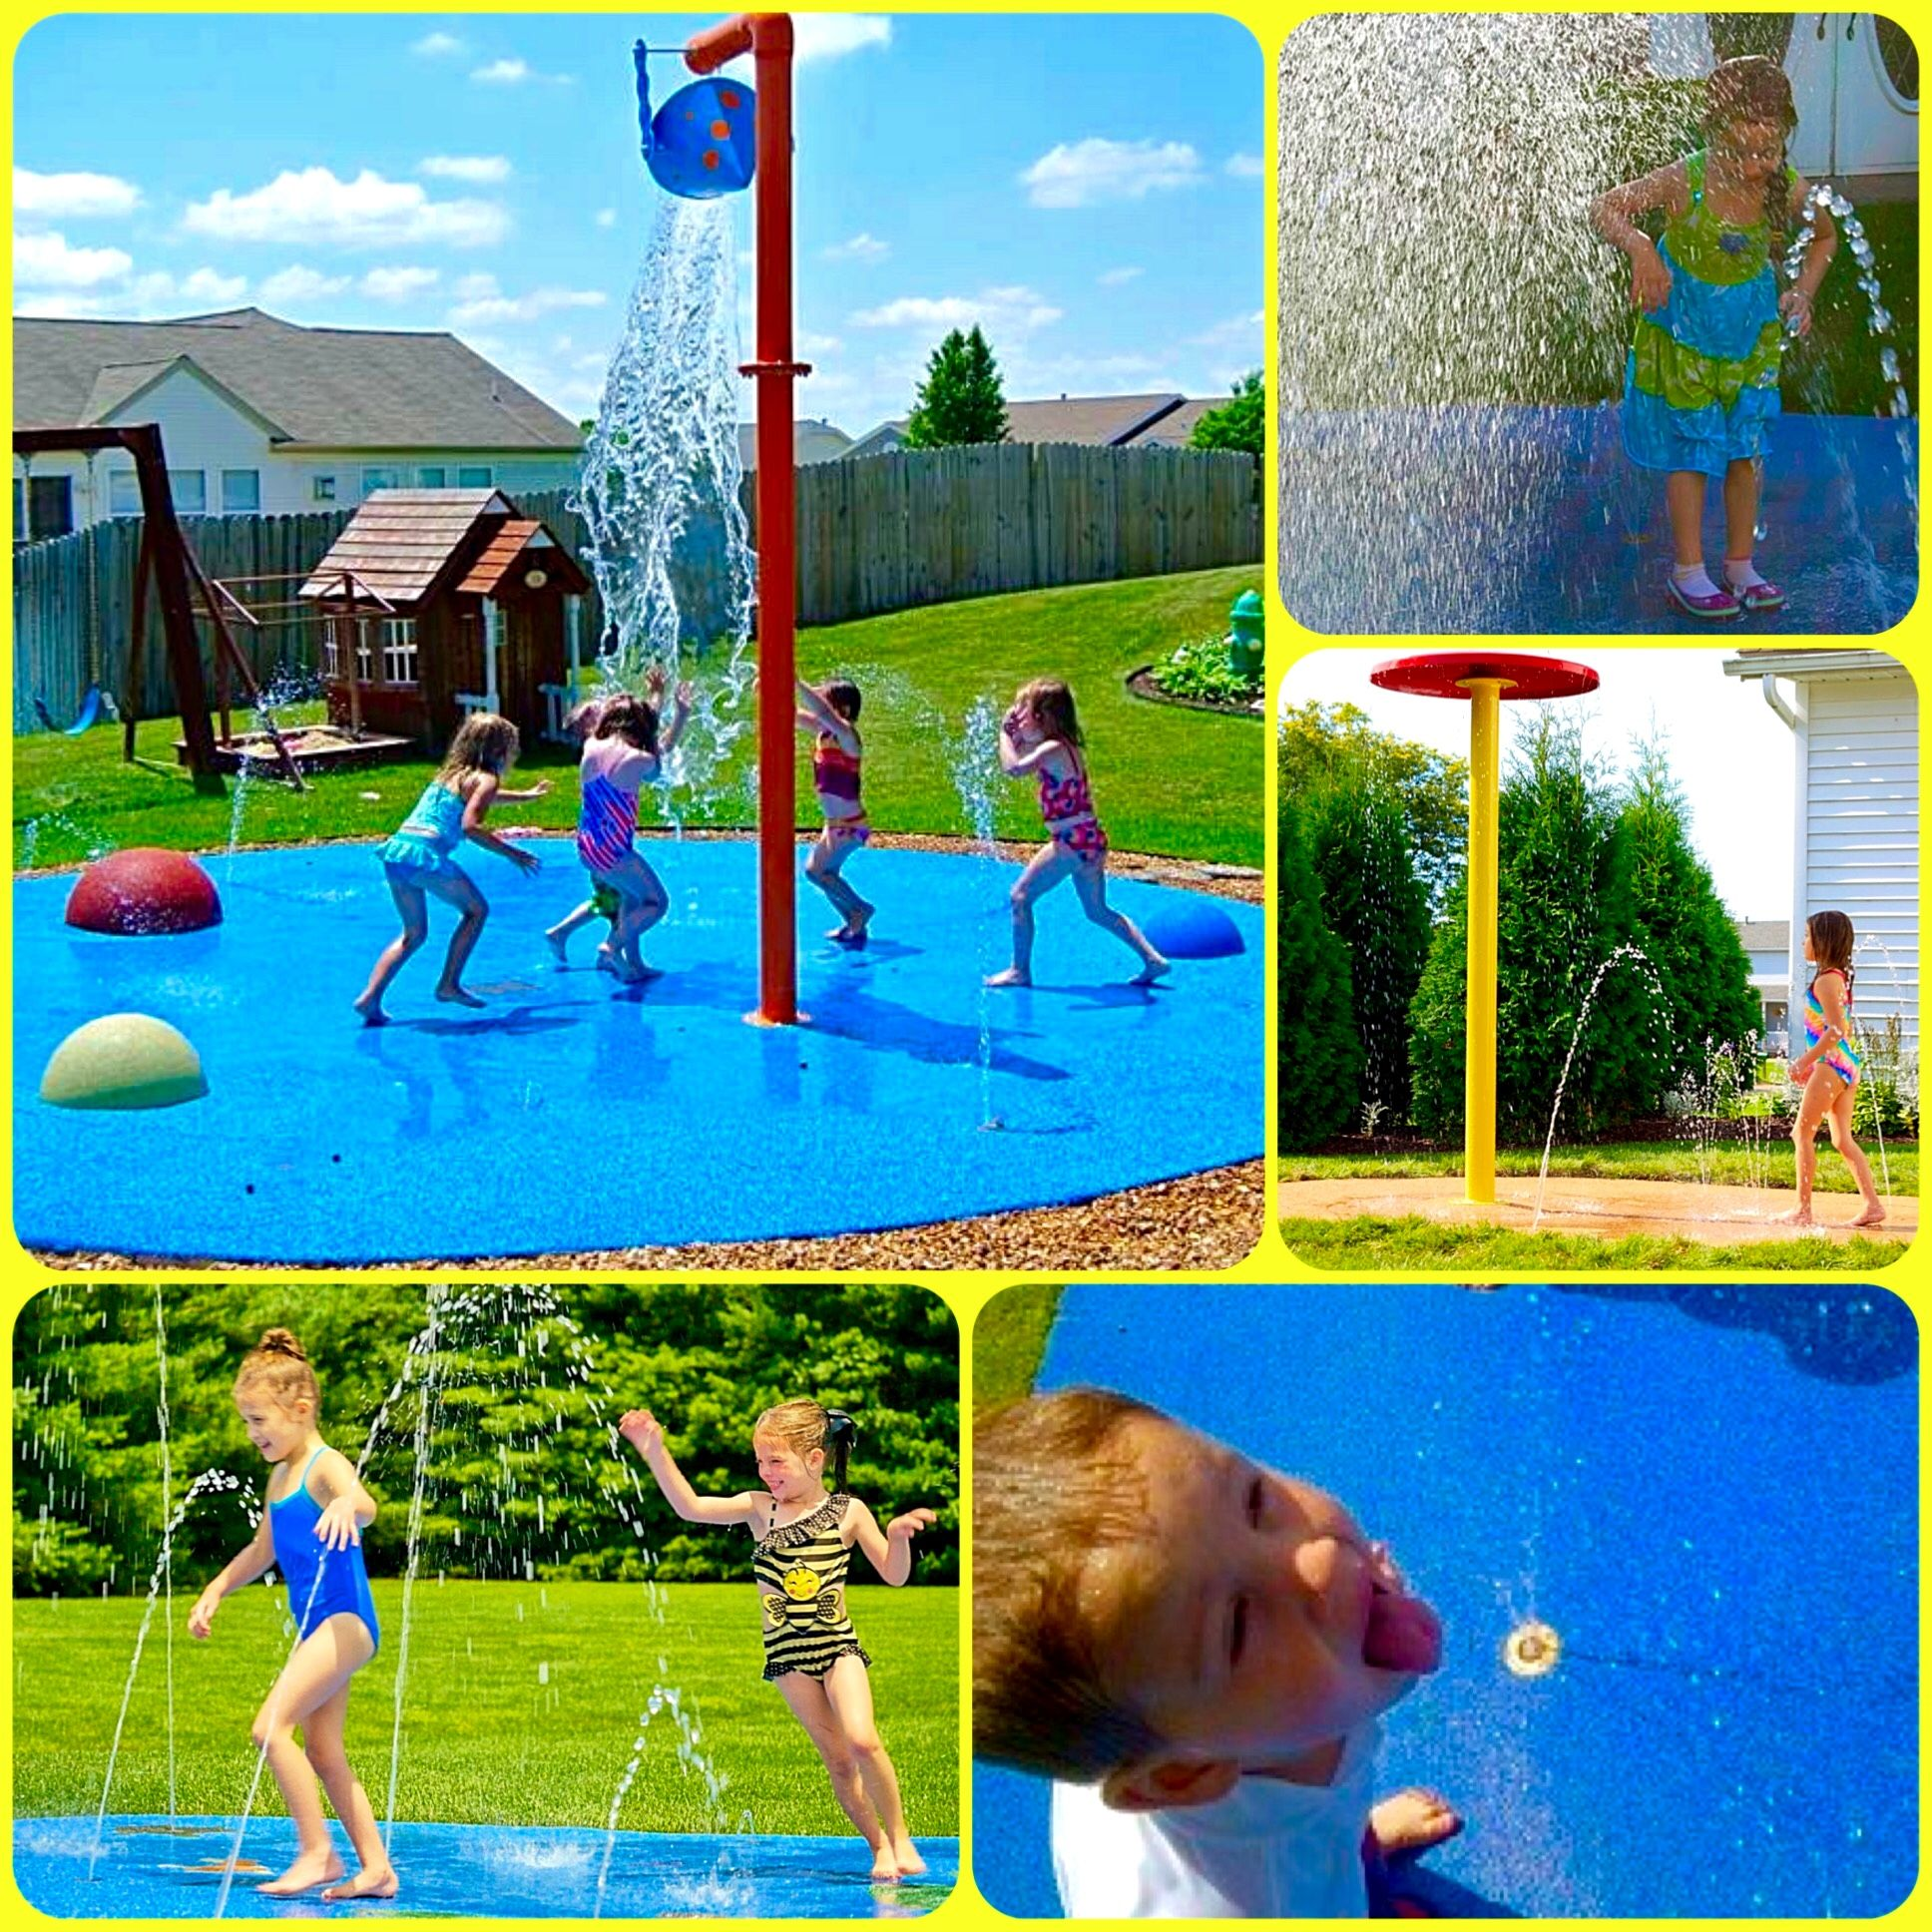 3ddf6701c11169d32b98cfcbfc81210f Backyard Splash Pad Ideas on backyard concession stand ideas, backyard walking path ideas, backyard skatepark ideas, backyard yoga ideas, backyard boardwalk ideas, backyard horseshoe pit ideas, backyard parking ideas, backyard shelter ideas, backyard green space ideas, backyard picnic area ideas, backyard soccer field ideas, backyard walking trail ideas, backyard games ideas, backyard cabanas ideas,